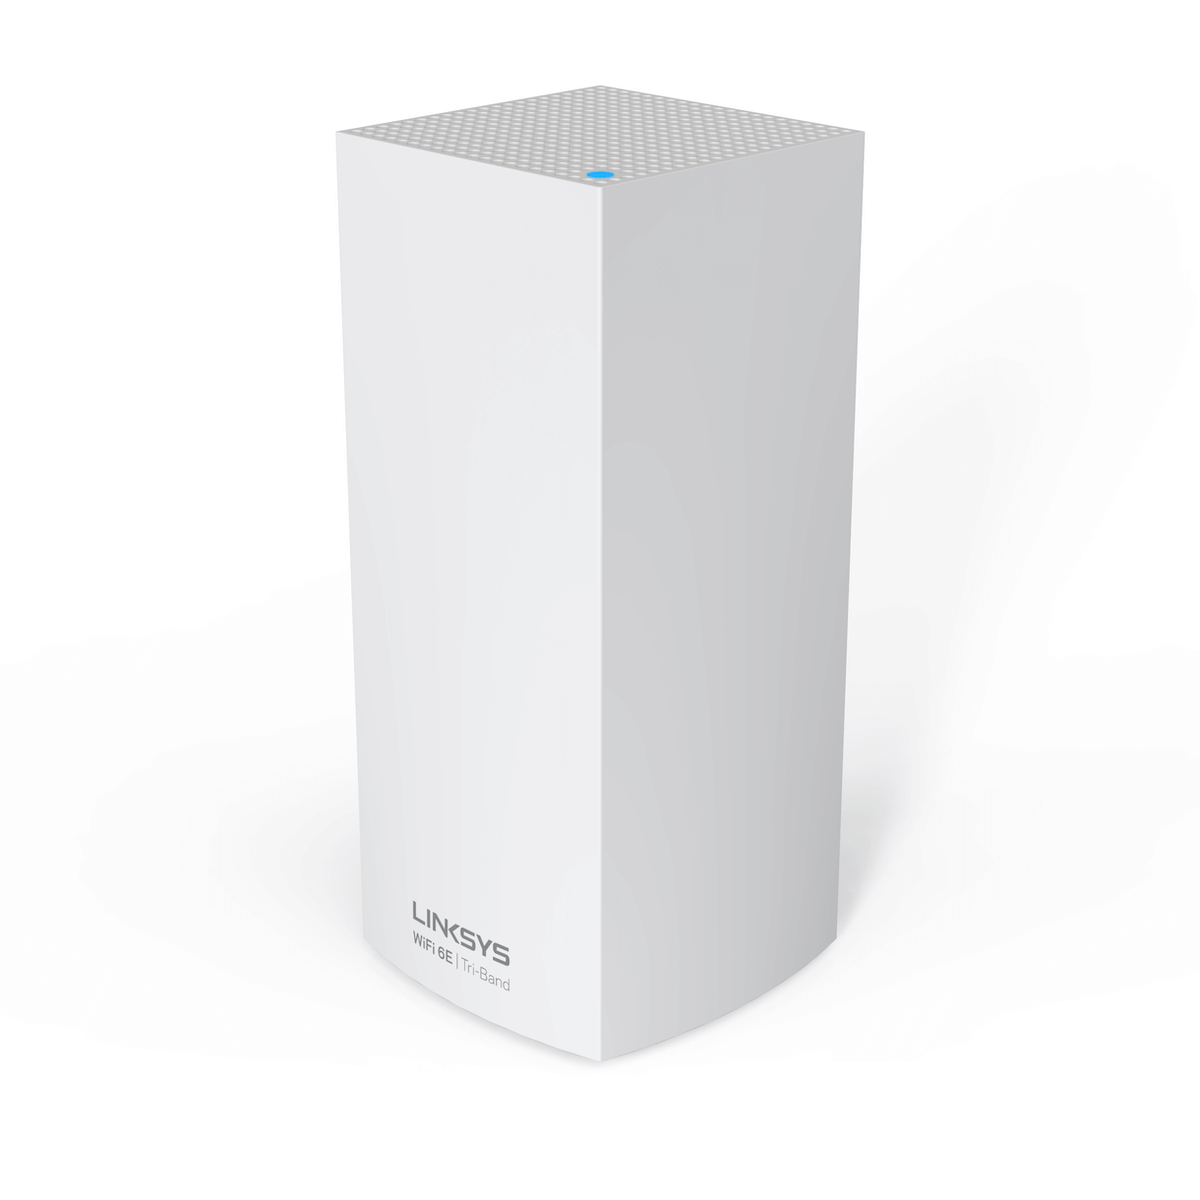 Linksys AXE8400 front01